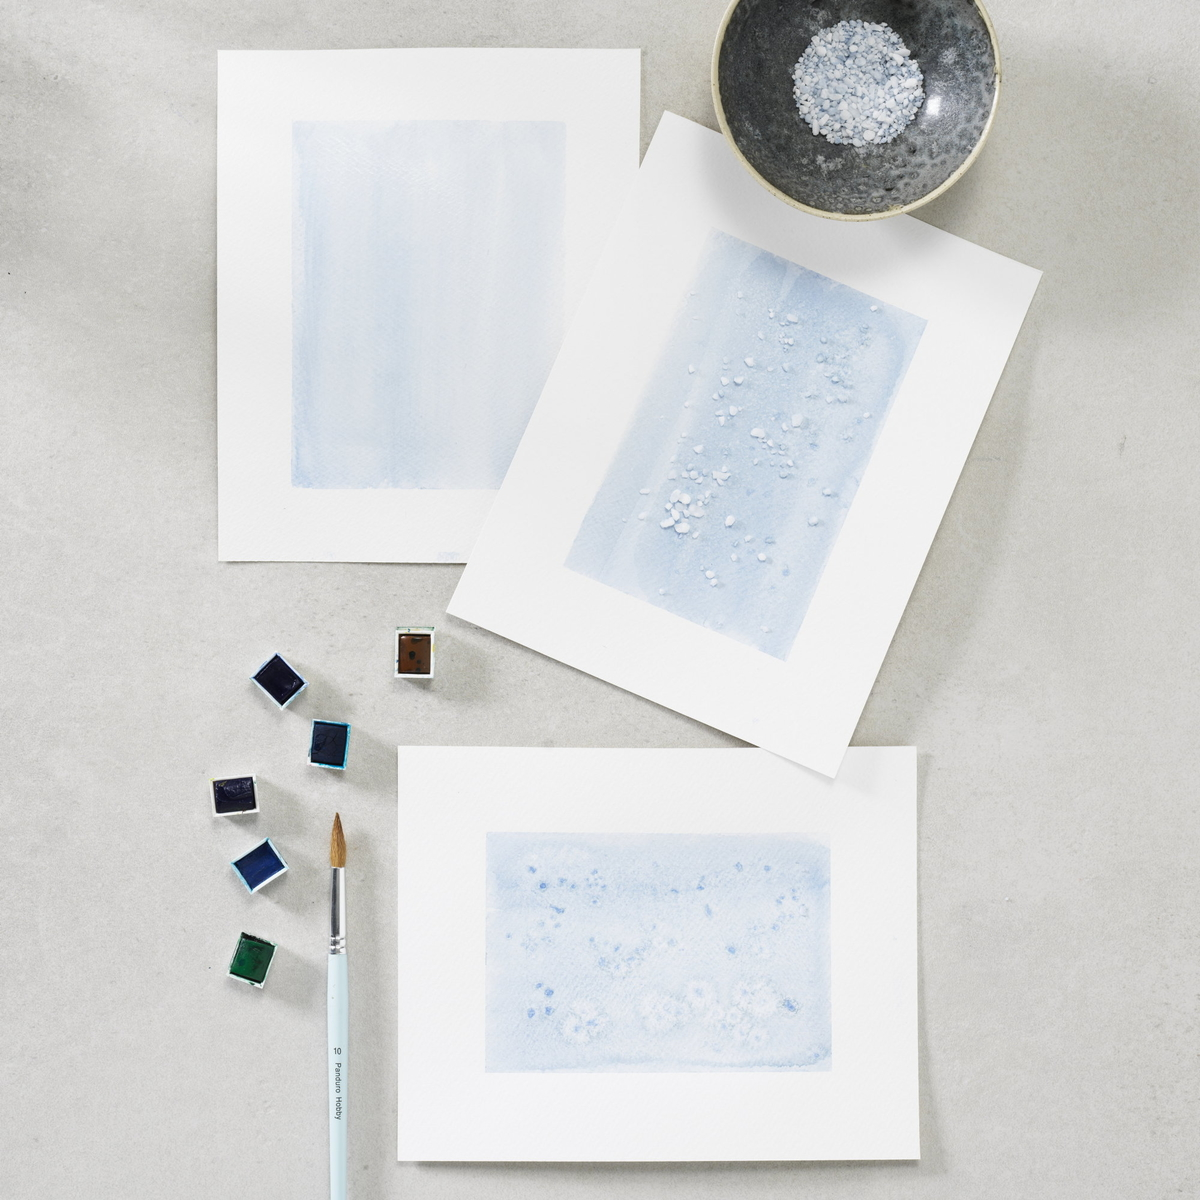 Watercolour painting with salt